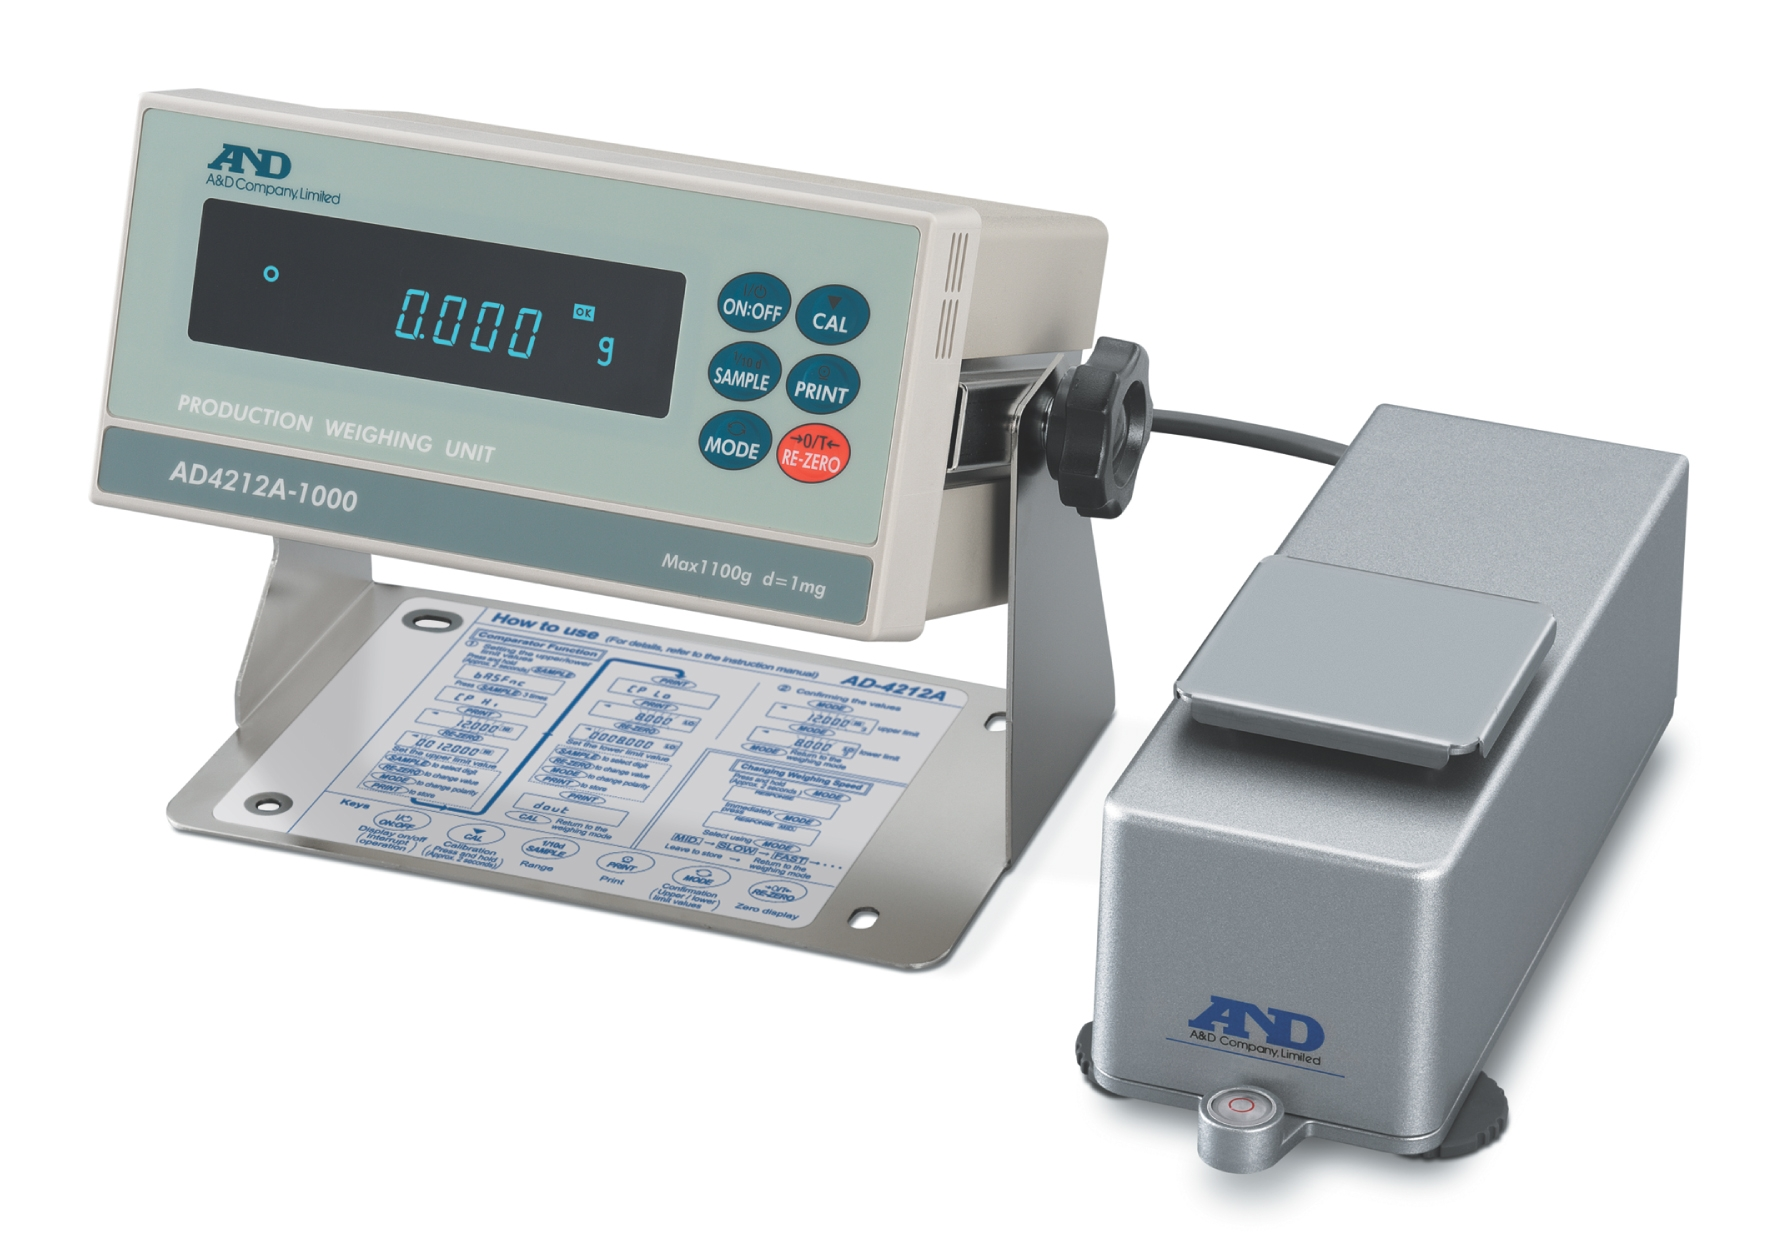 AD-4212A Production Weighing System